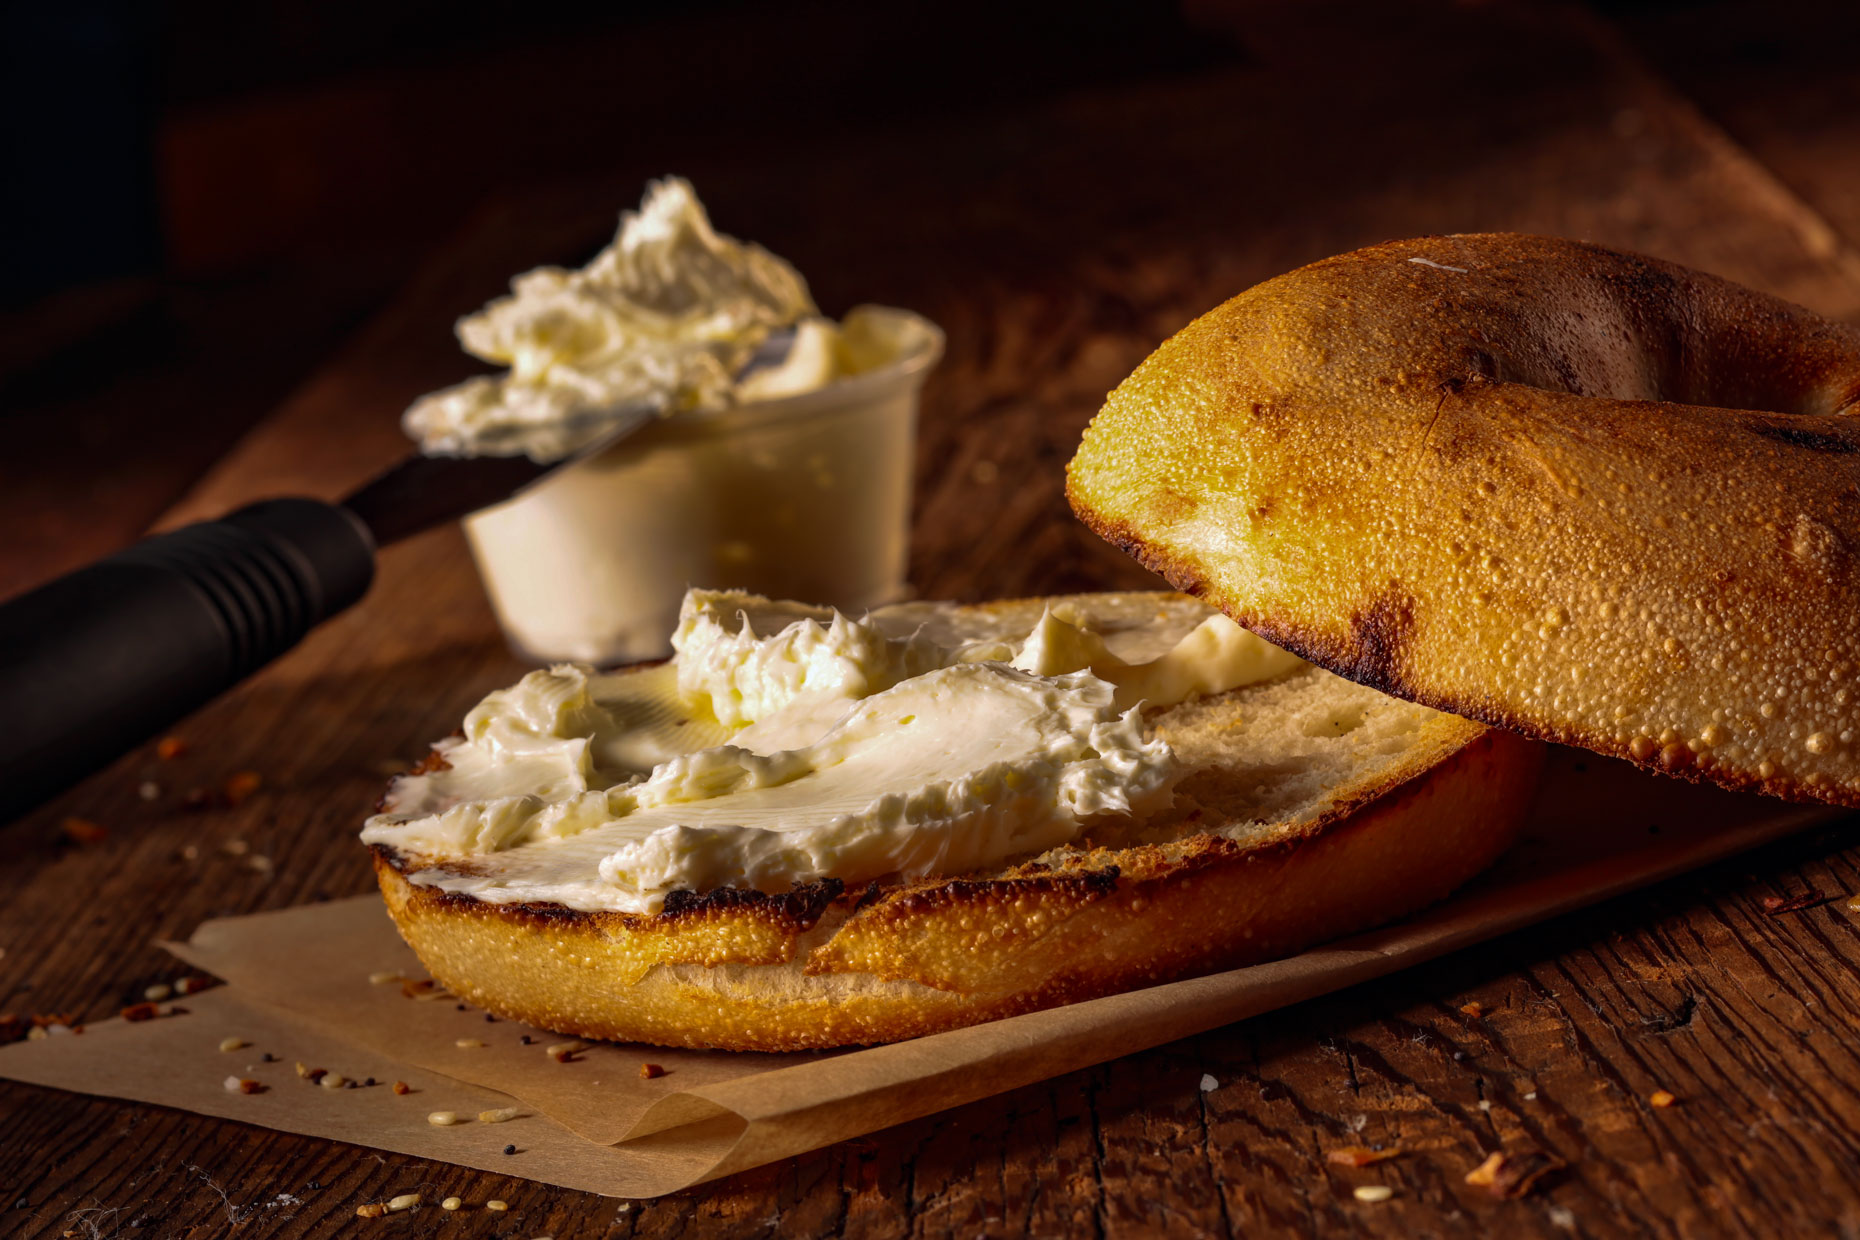 Food Photography | Bagel and Cream Cheese